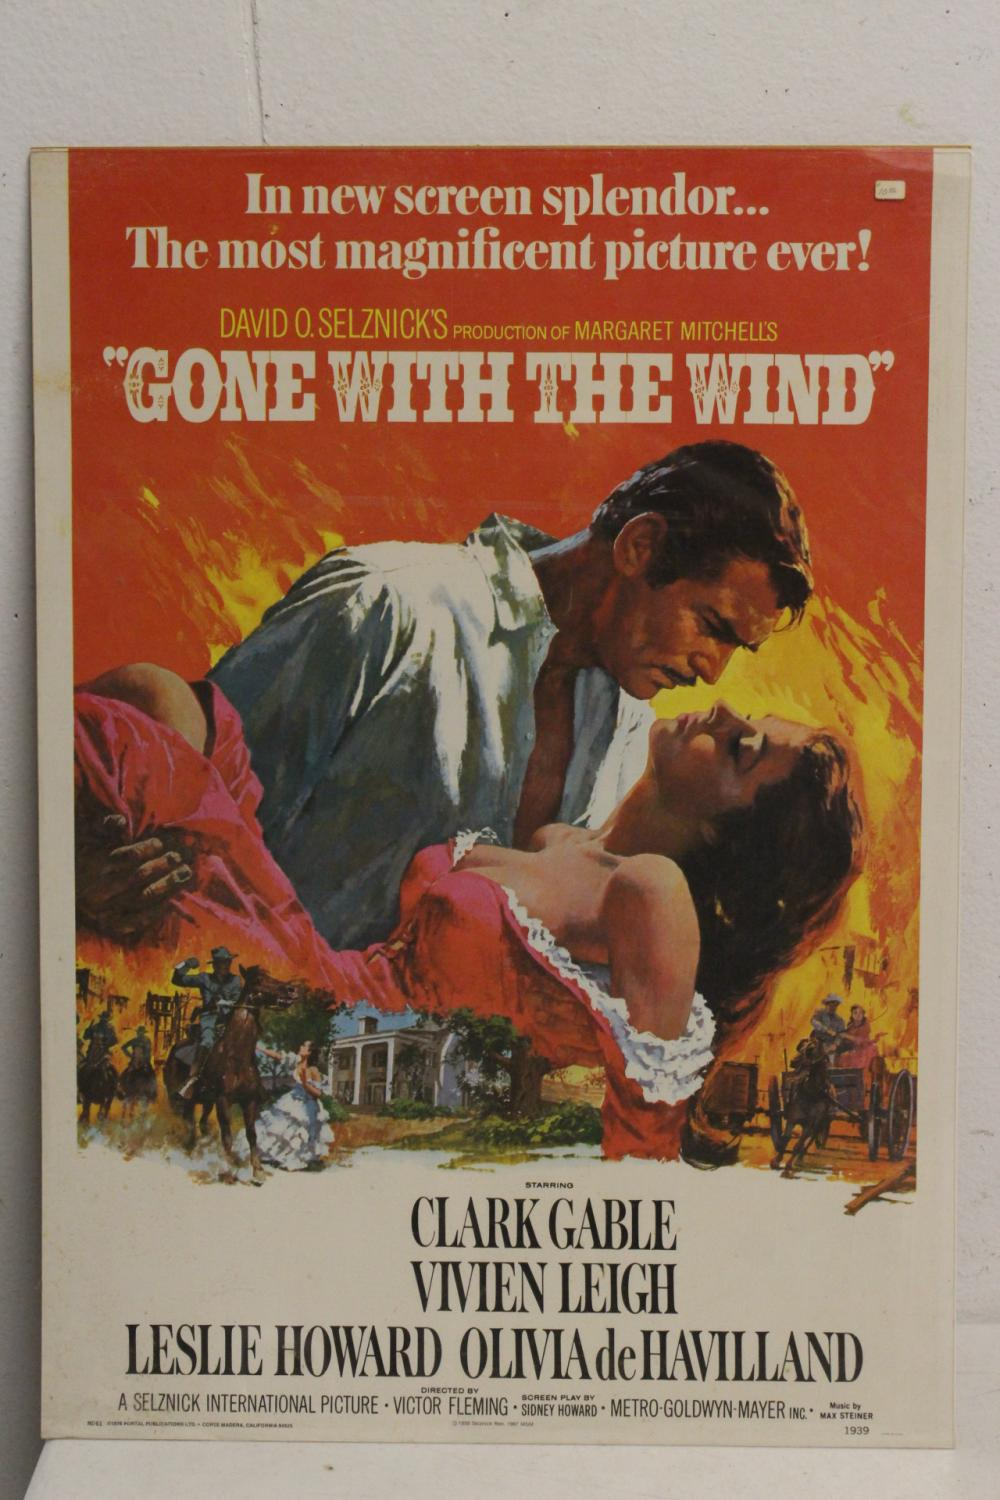 Lot 54: 3 vintage movie posters, and a advertisement panel